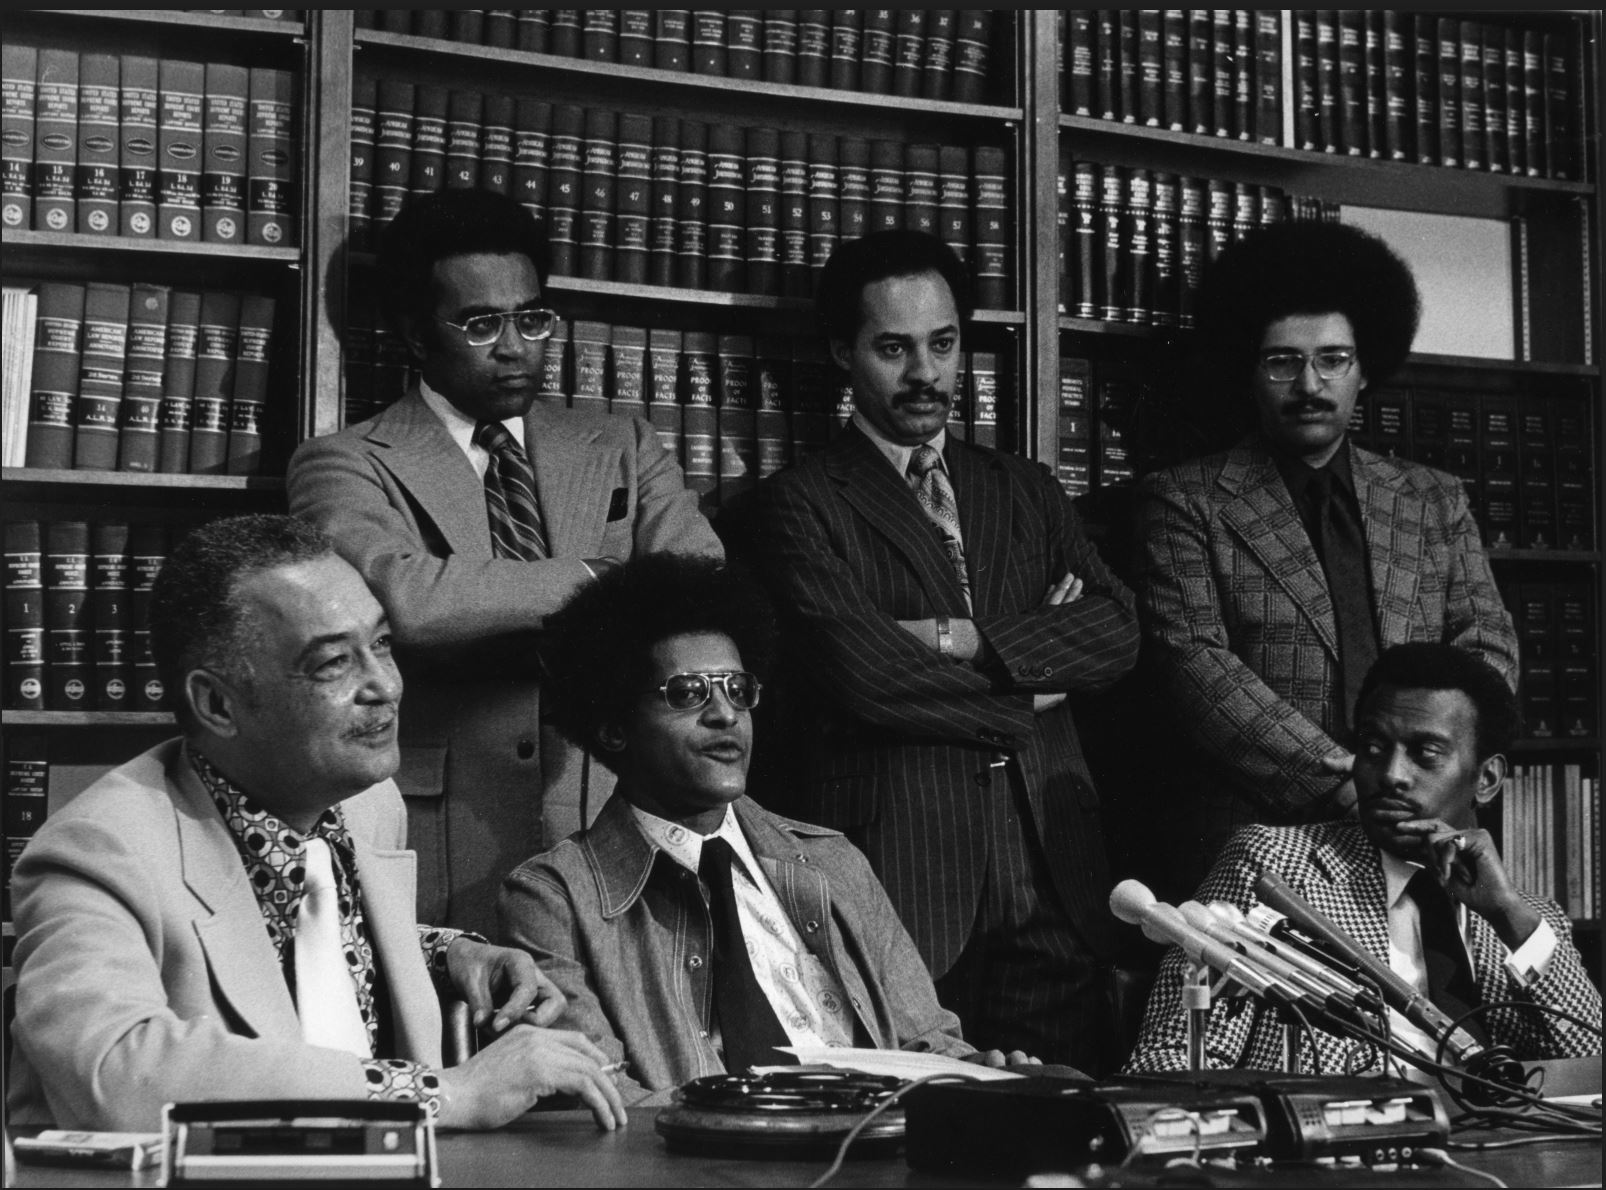 Coleman Young and Ken Cockrel at Press Conference